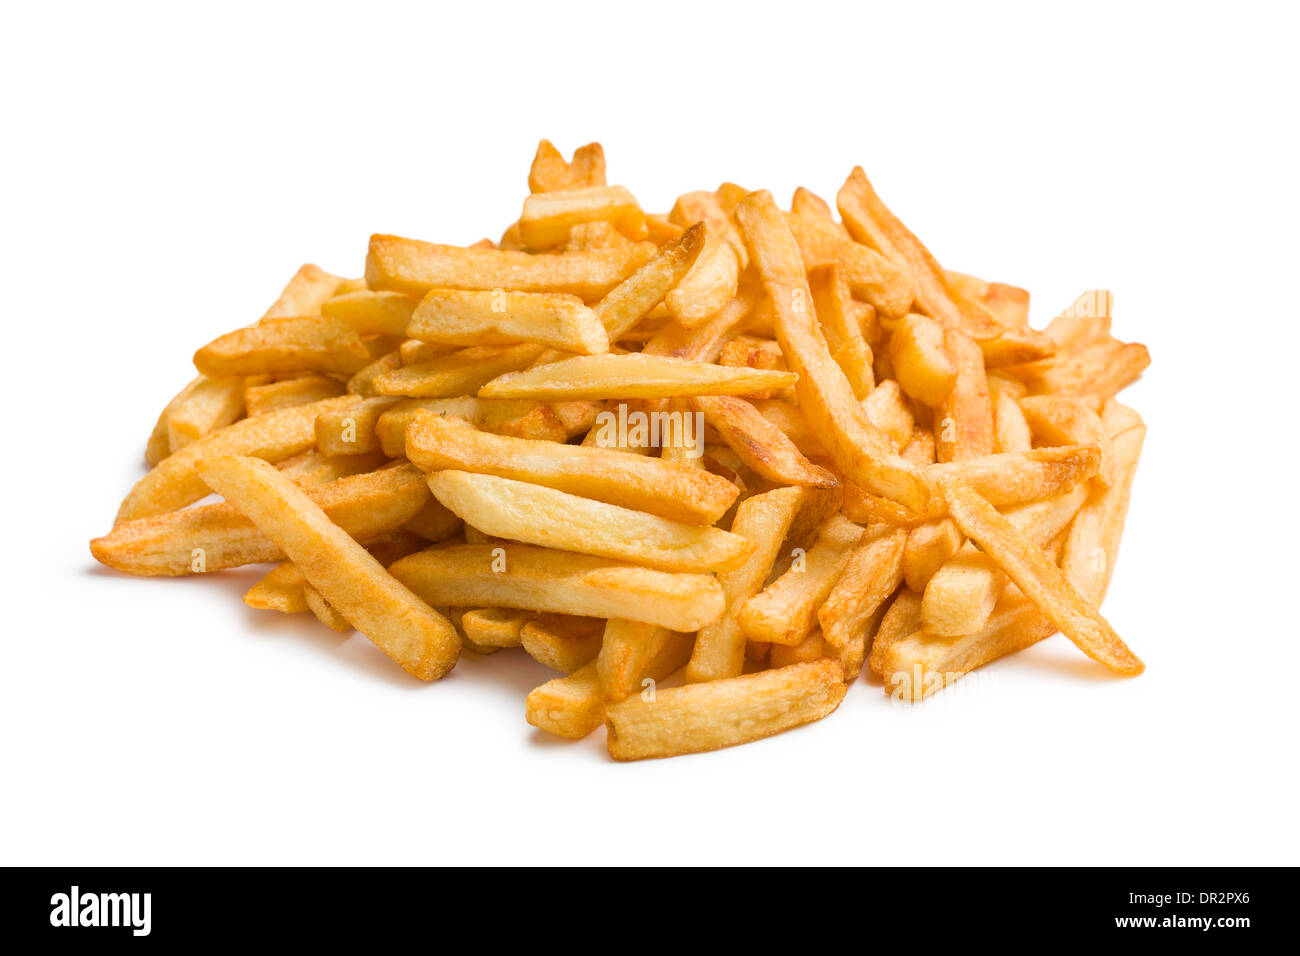 pile of french fries on white background - Stock Image